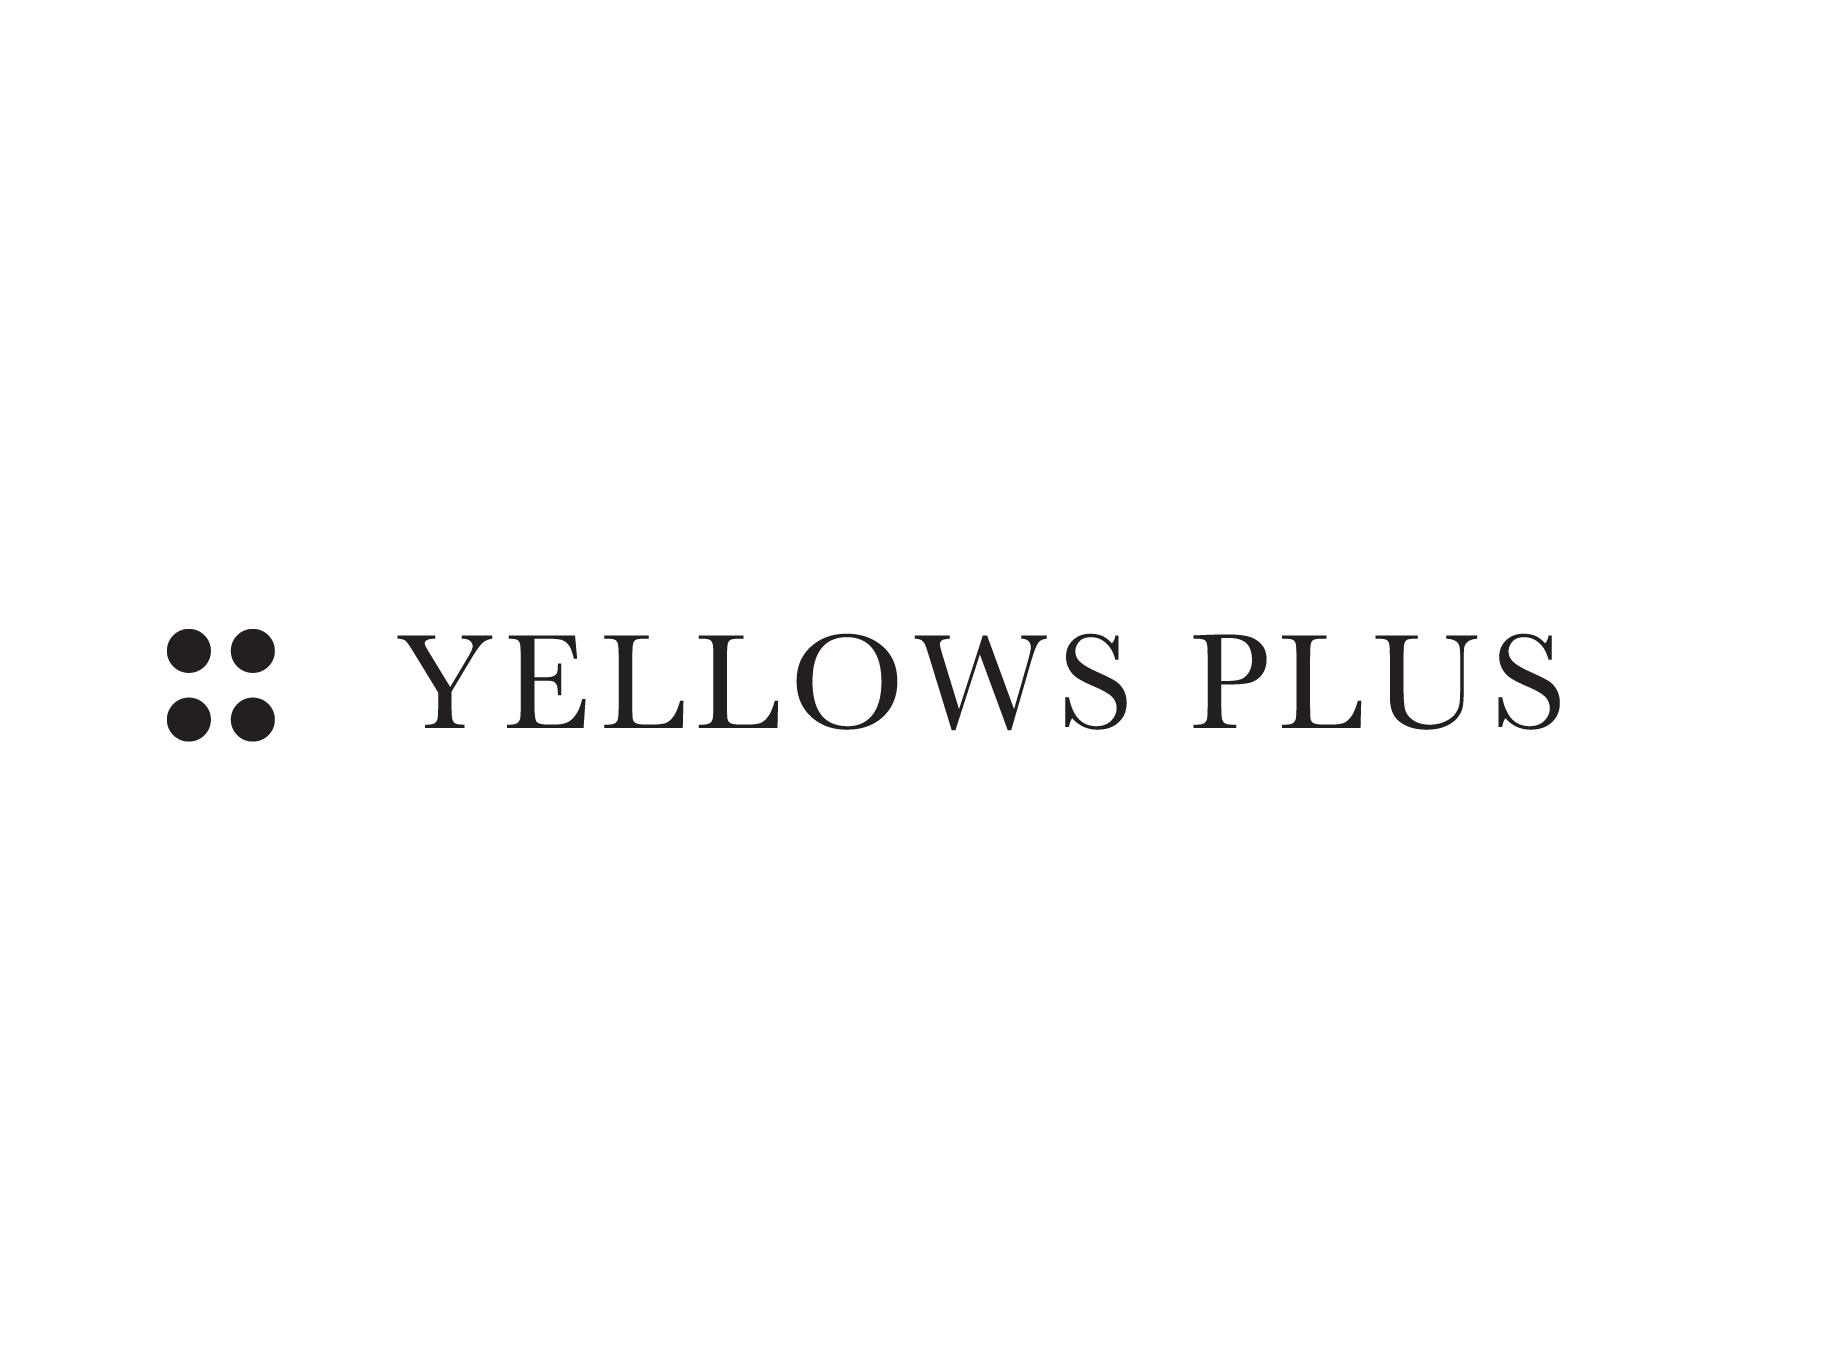 Yellows Plus  2.png